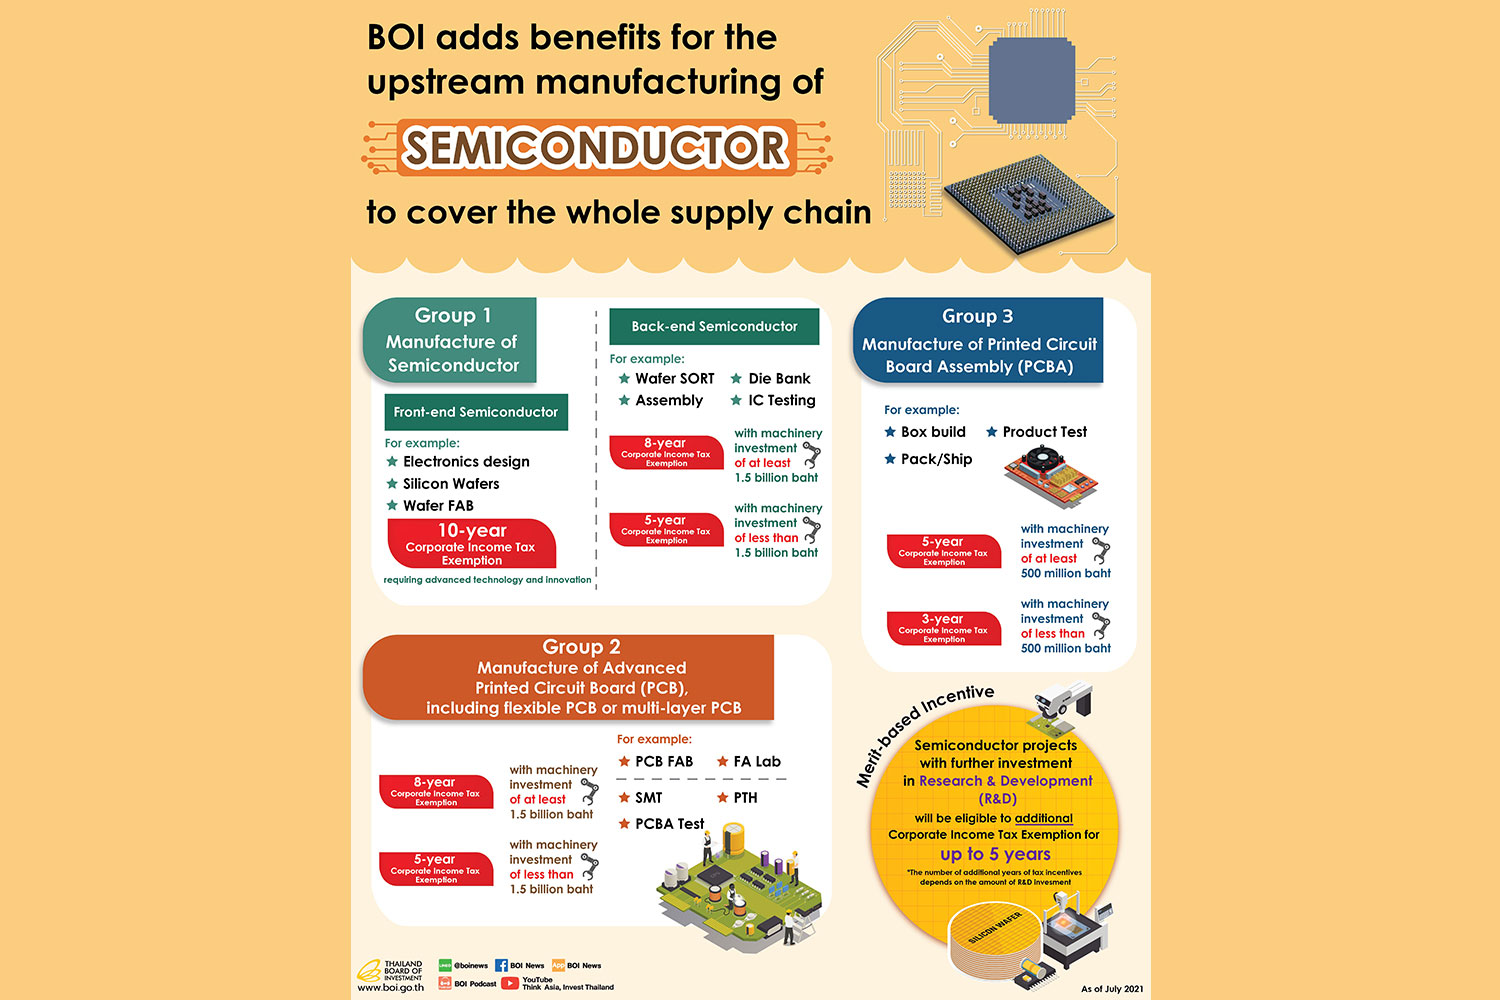 BOI adds benefits for upstream SEMICONDUCTOR manufacturing